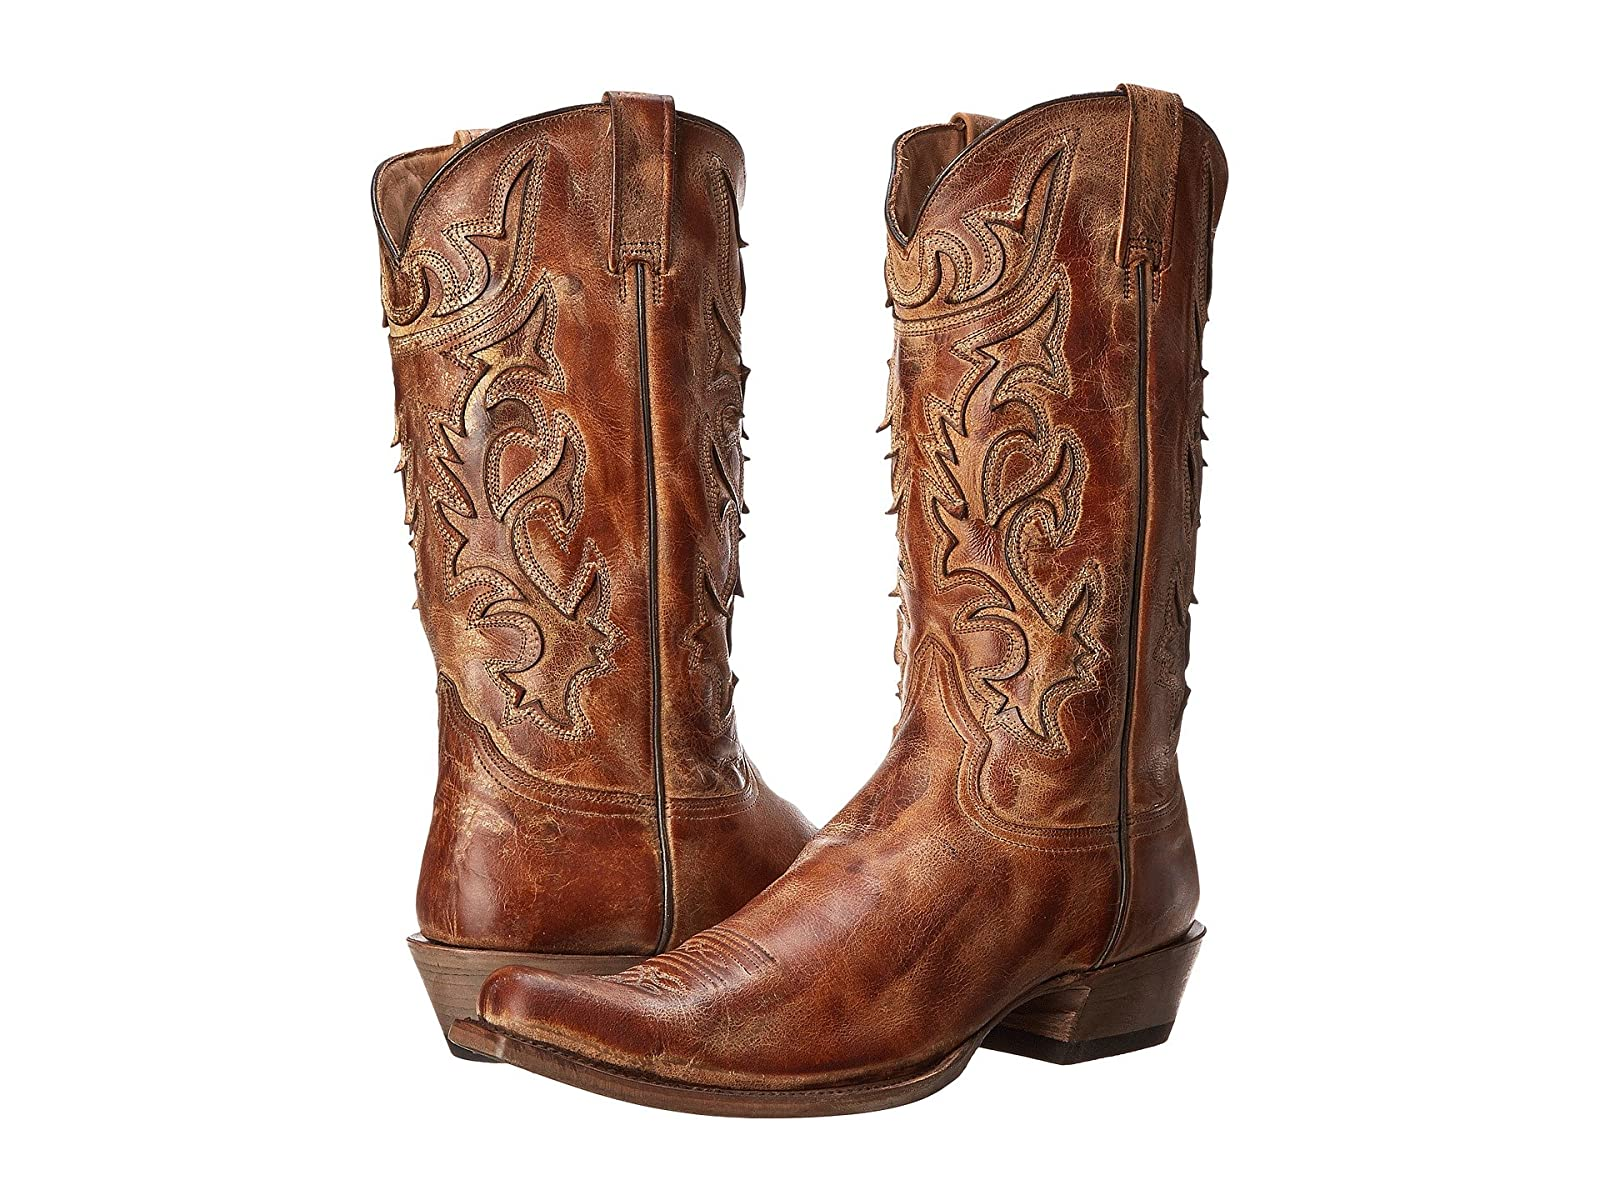 Stetson Cracked Inlay Snip Toe BootCheap and distinctive eye-catching shoes